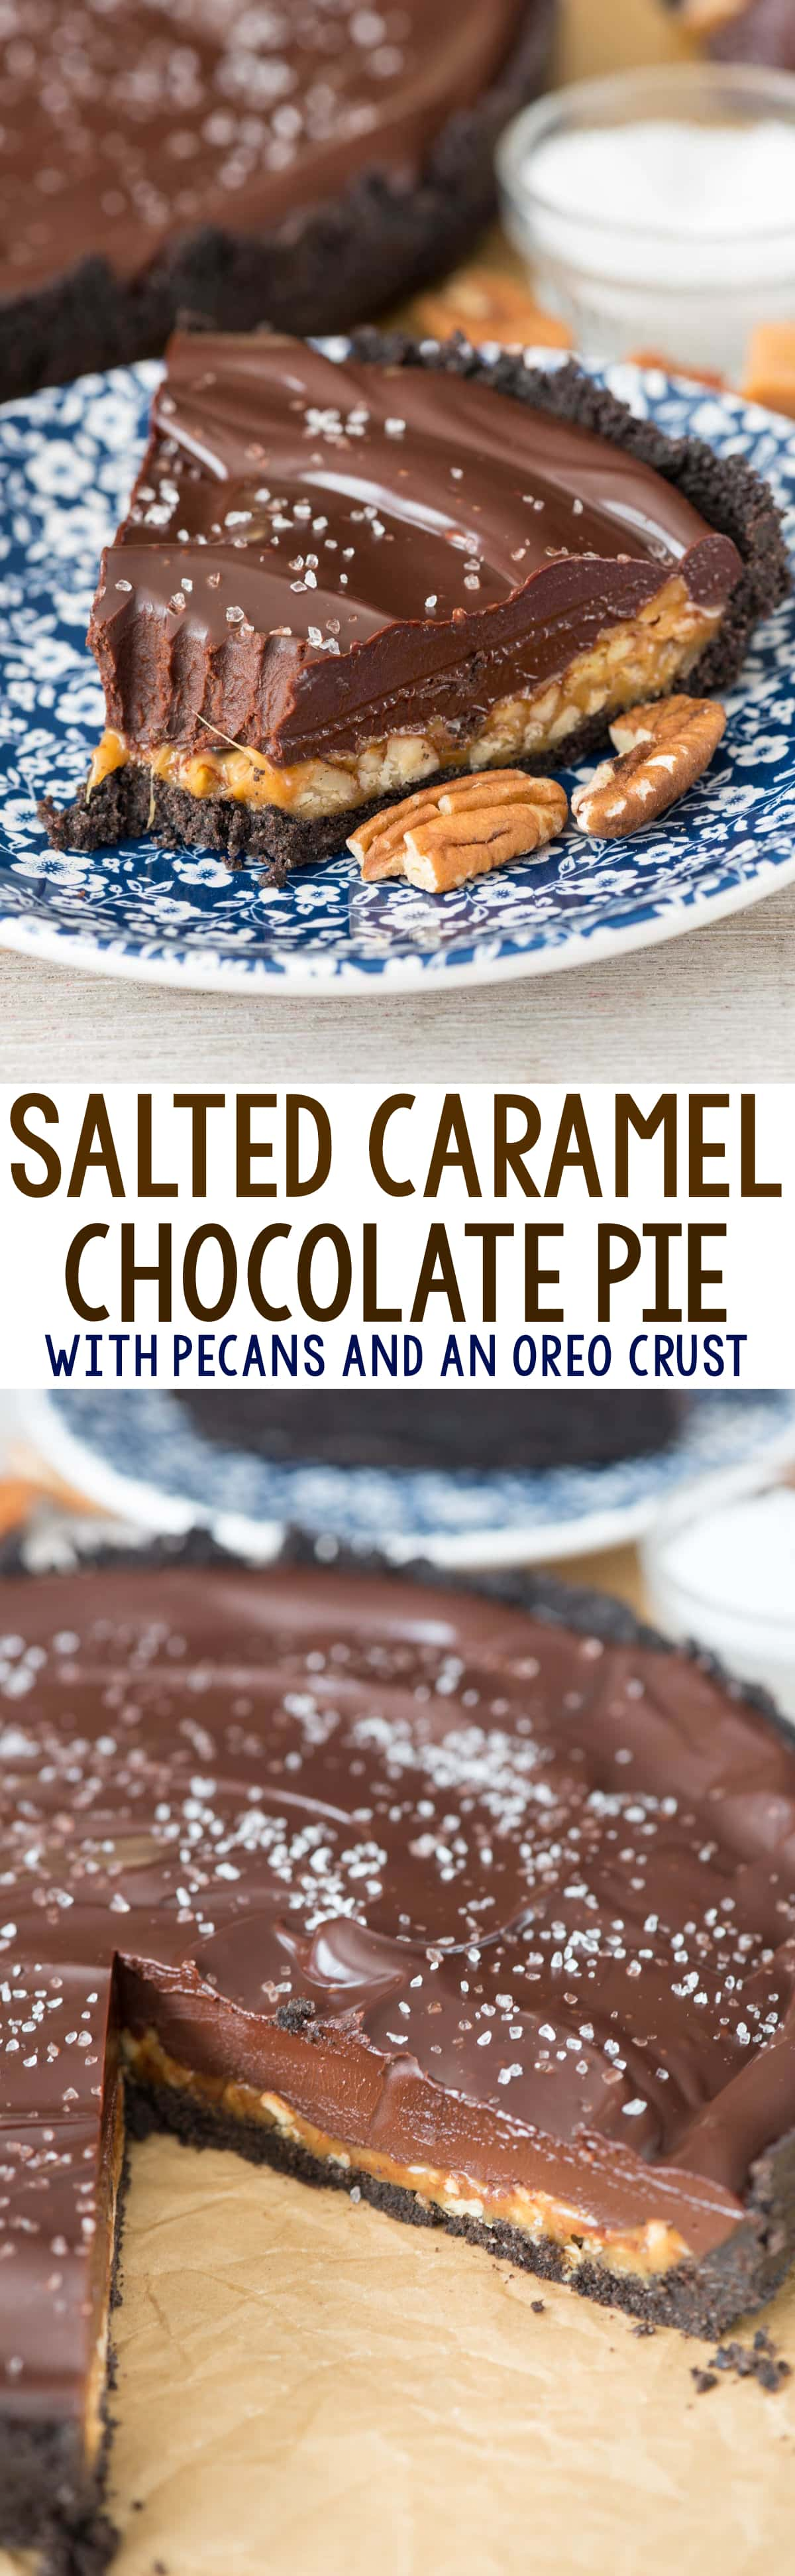 Salted Caramel Pecan Chocolate Pie - Crazy for Crust